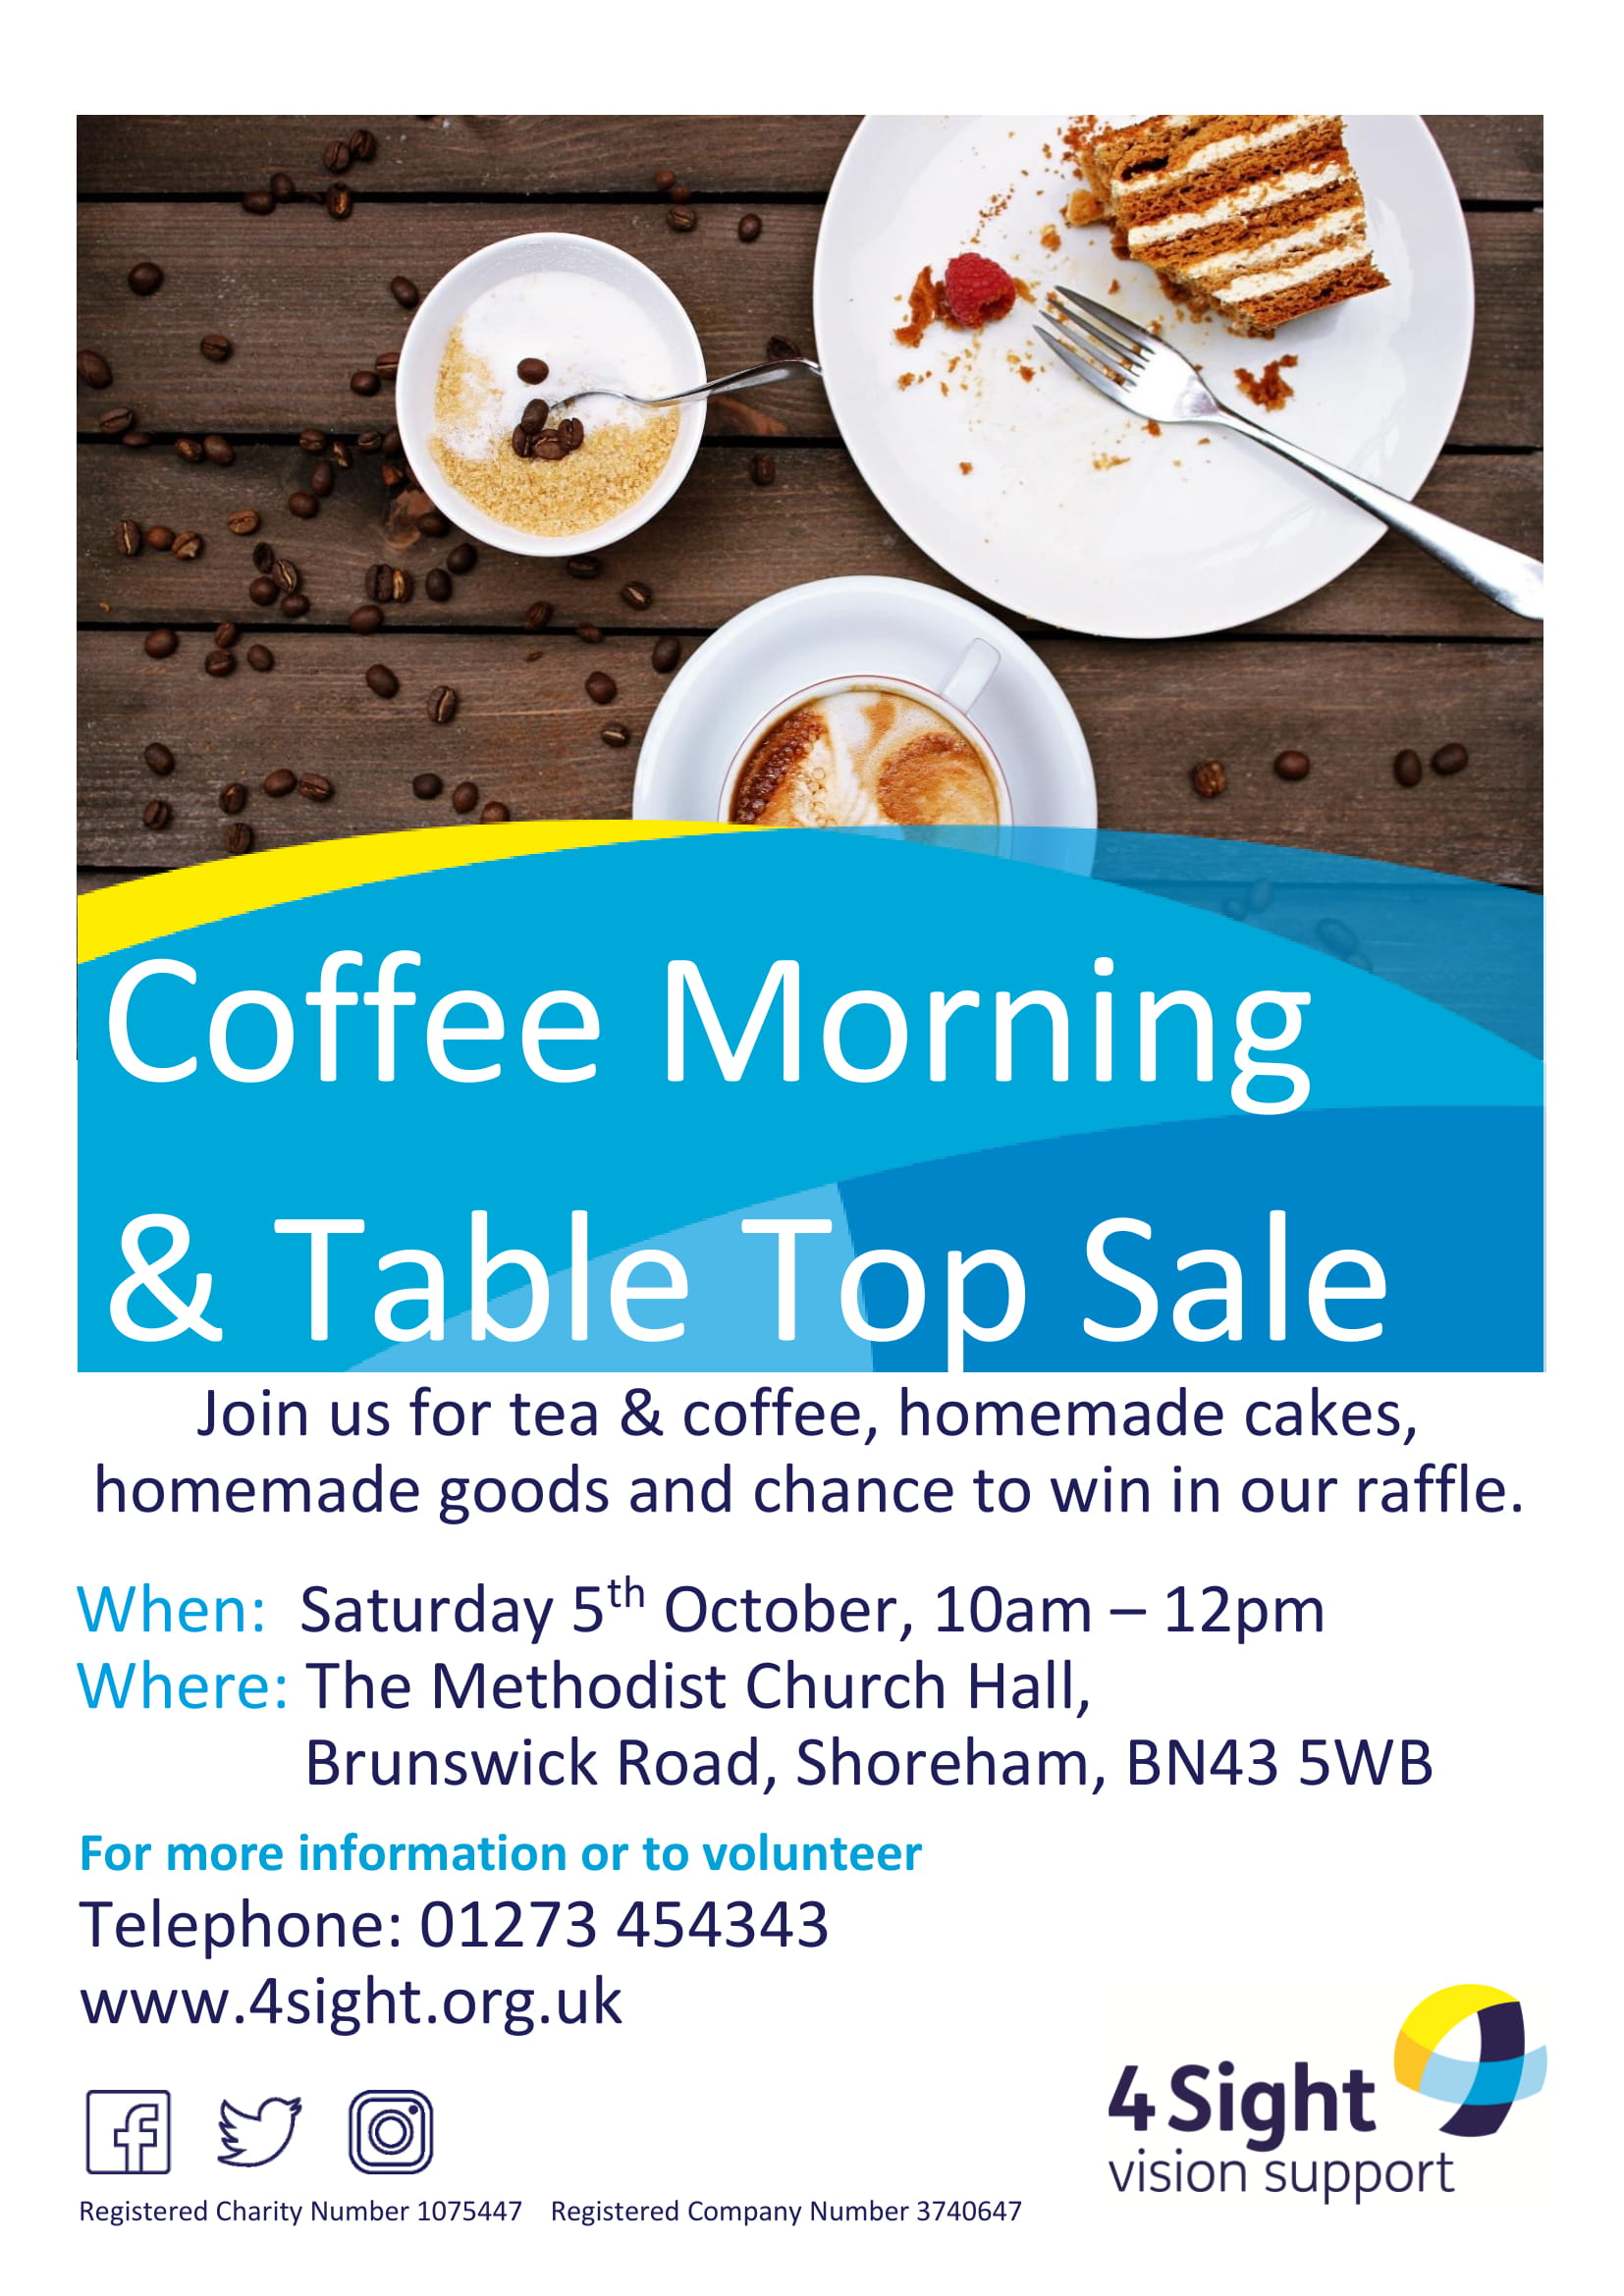 poster for event, all details typed with coffee and cake image at top